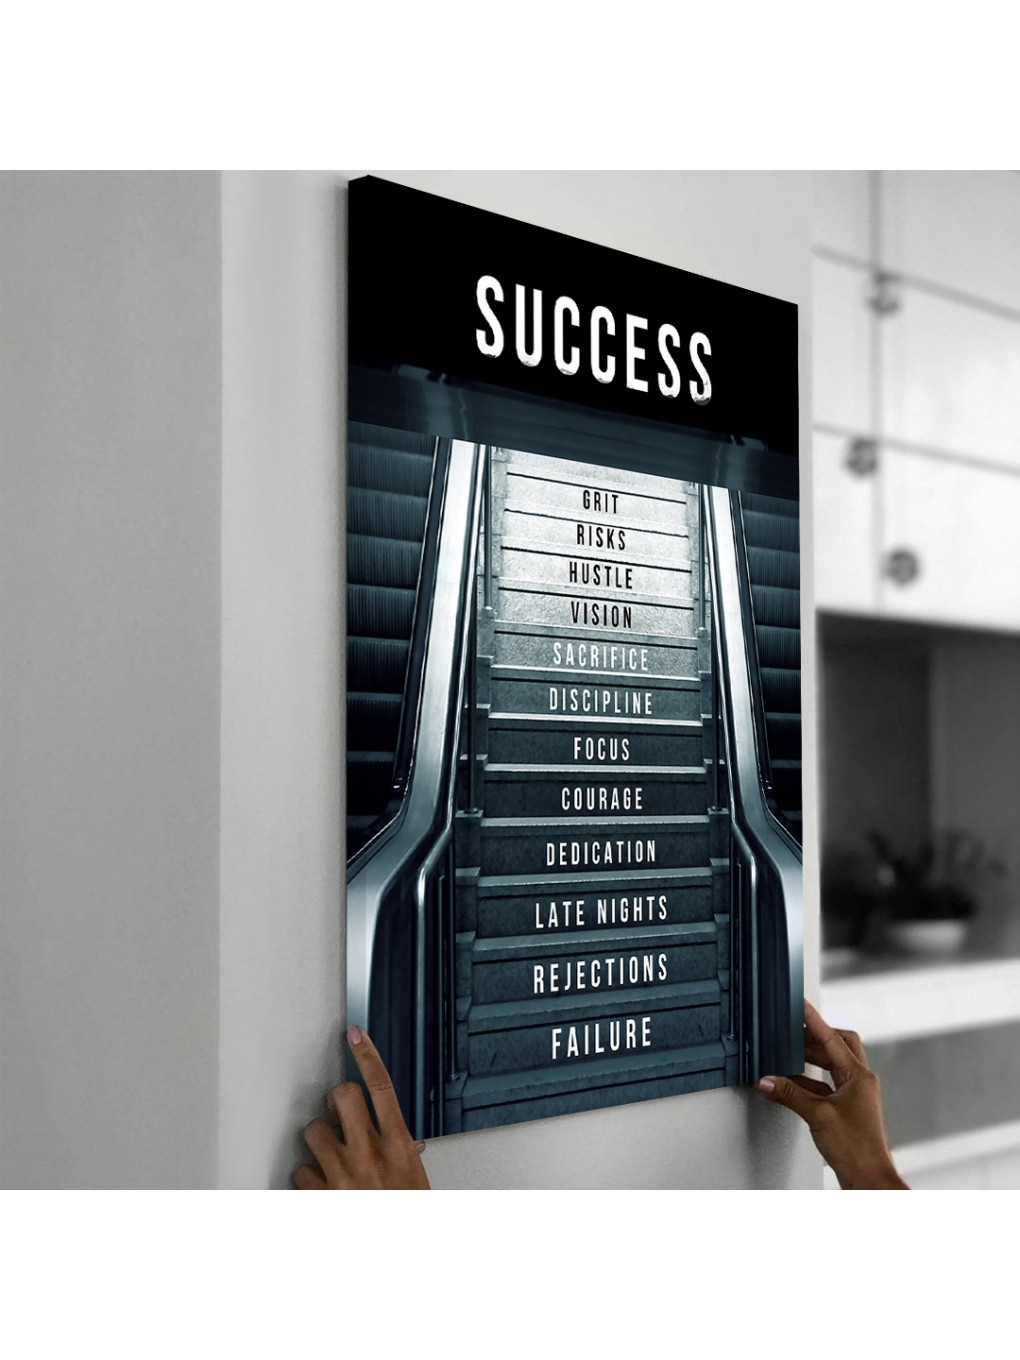 Take the Stairs - Success_SUC084_4